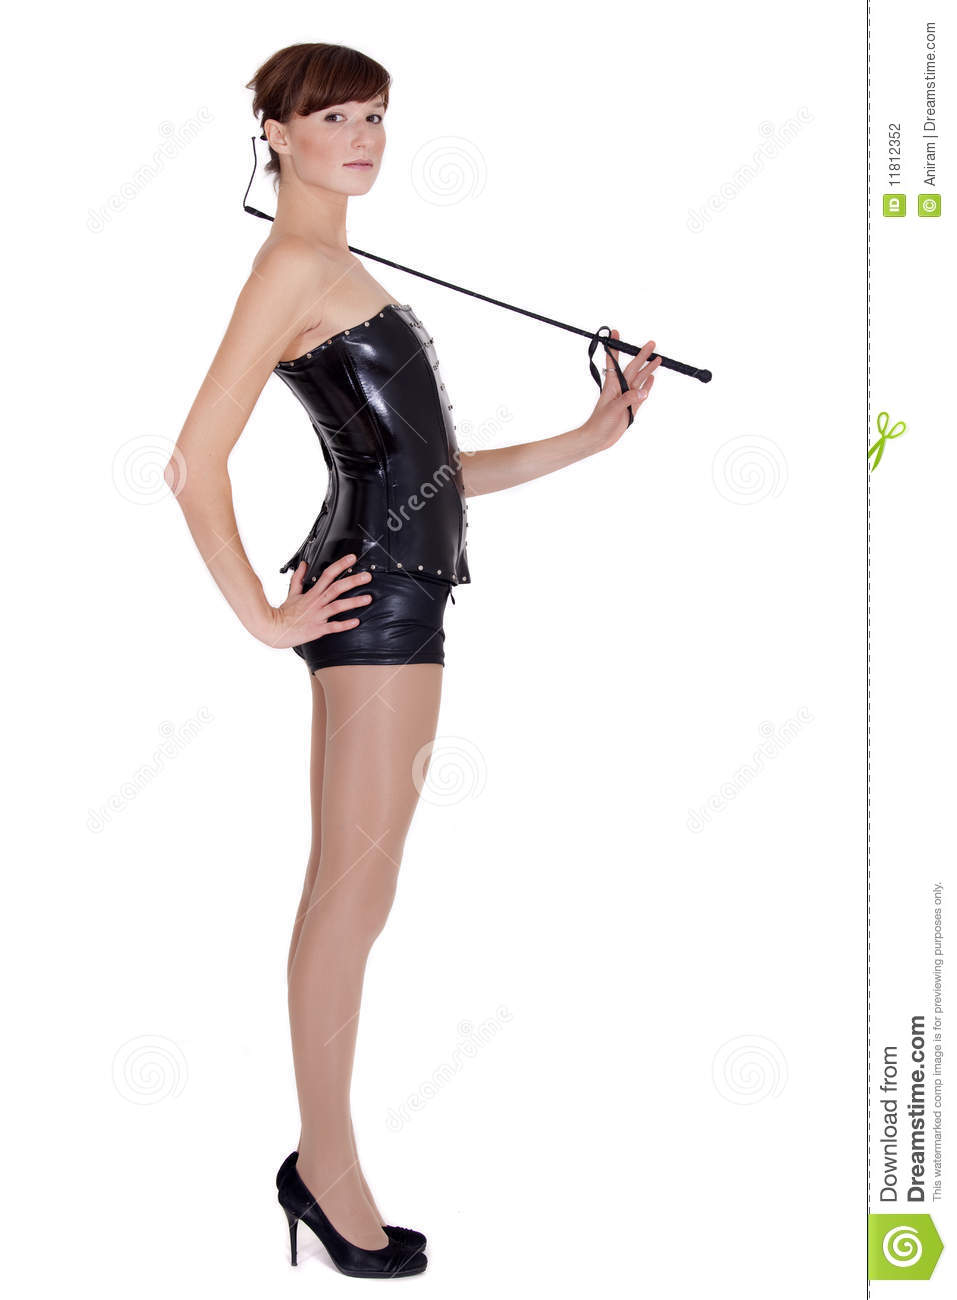 Dominatrix woman with whip